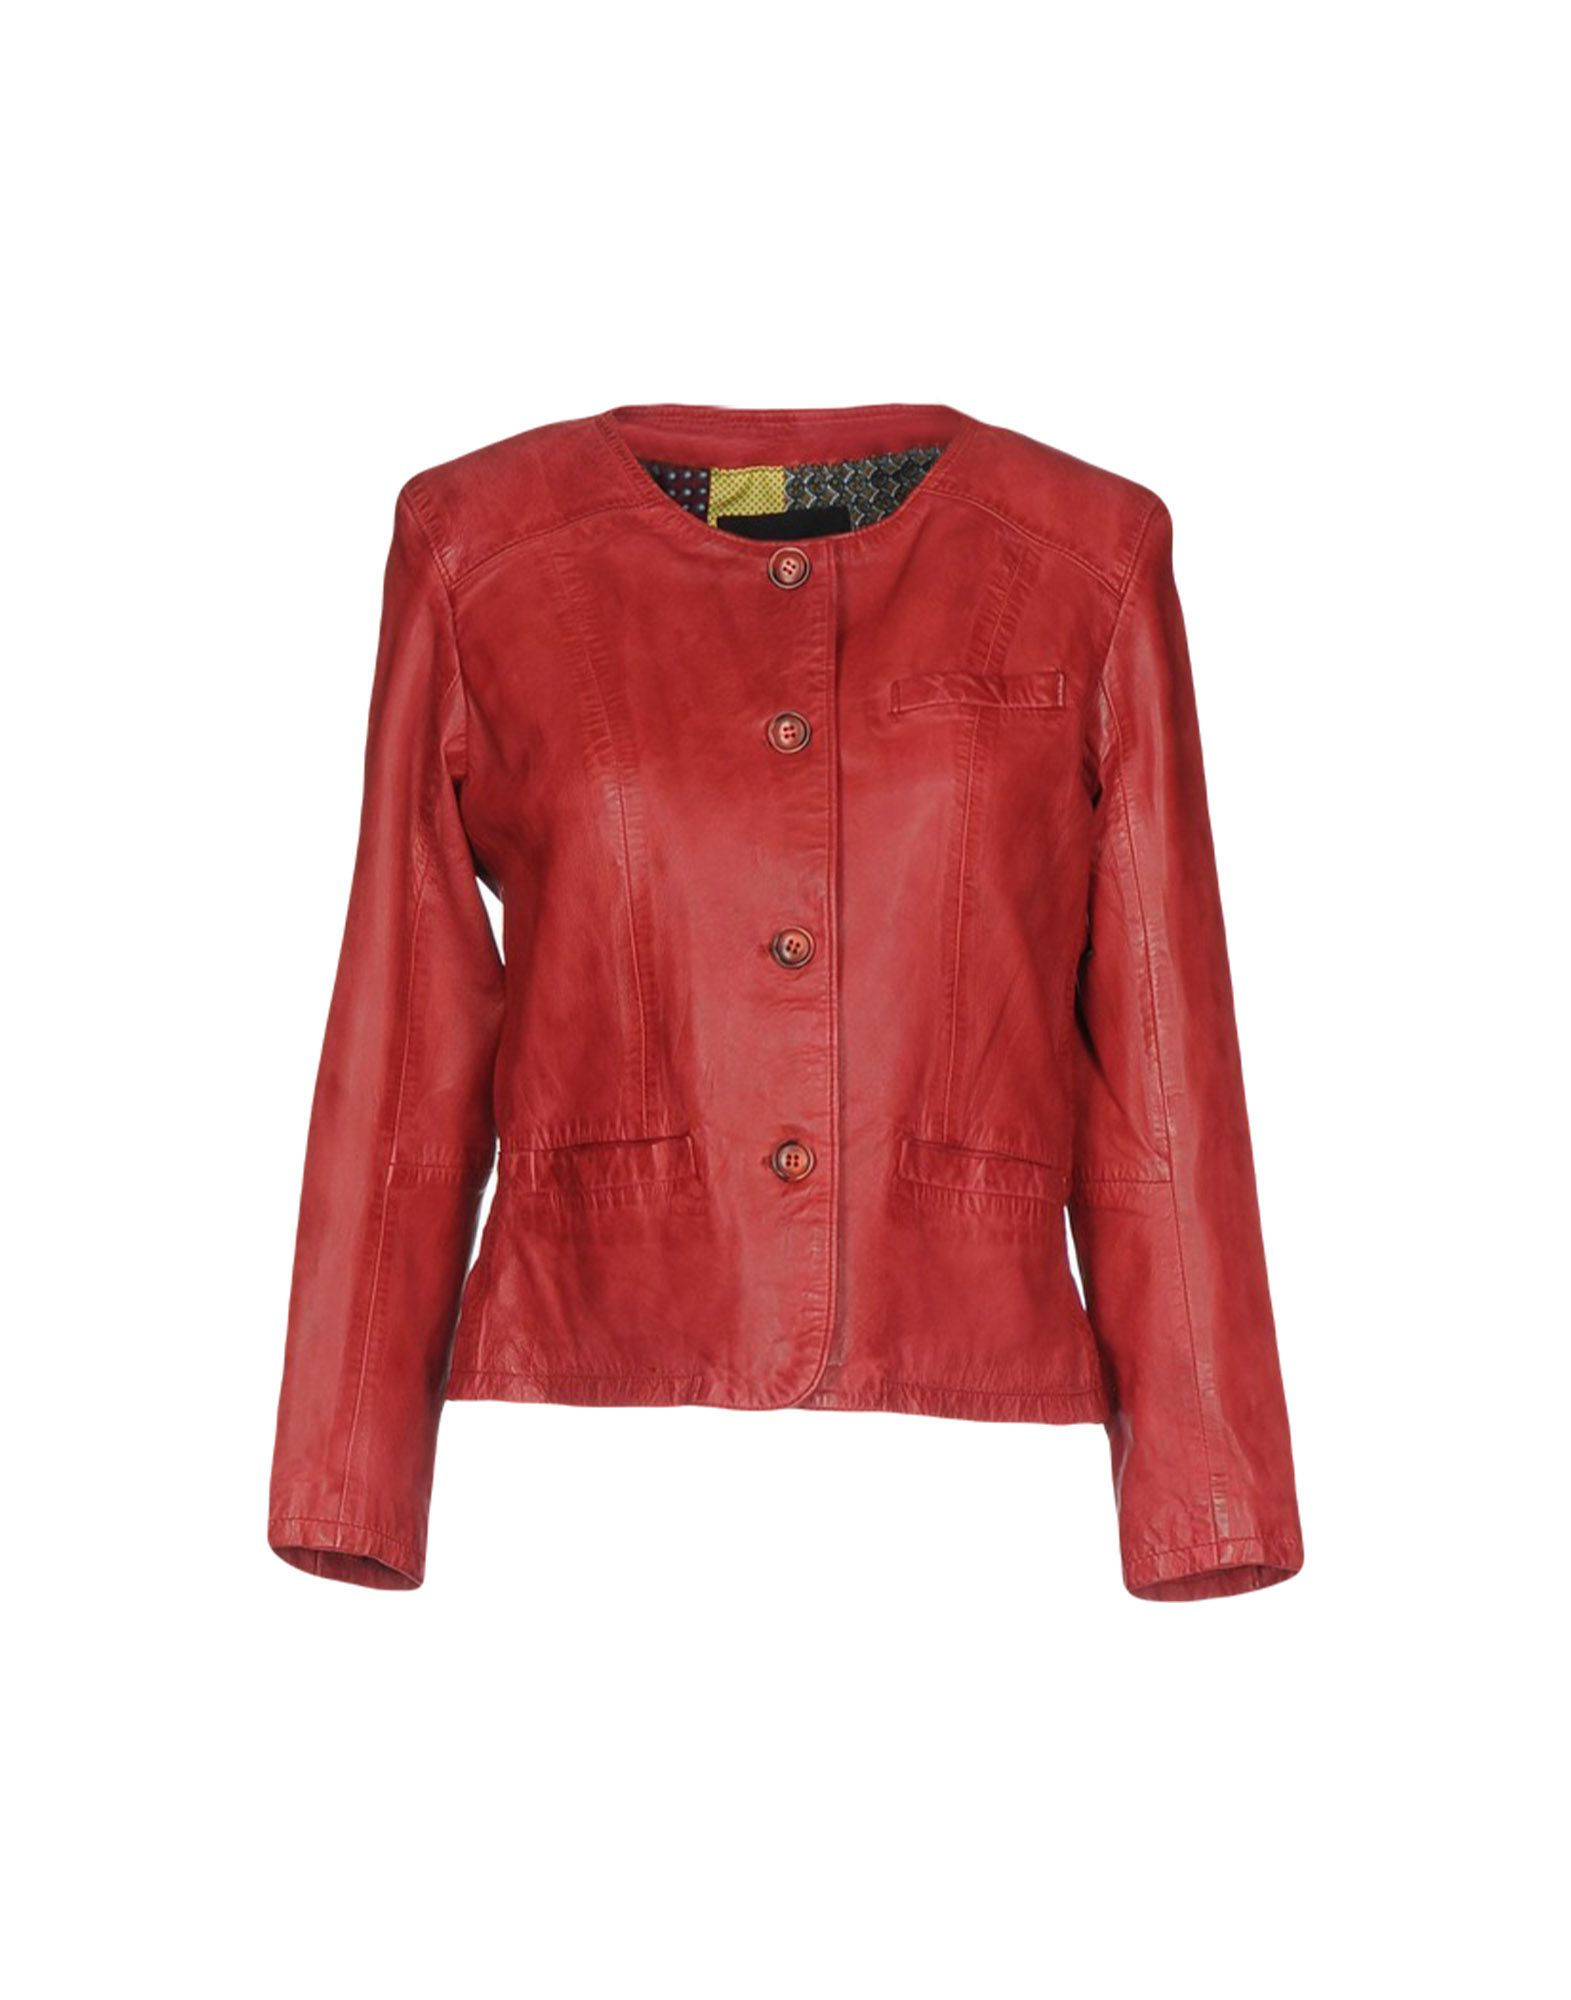 BULLY Leather Jacket in Red